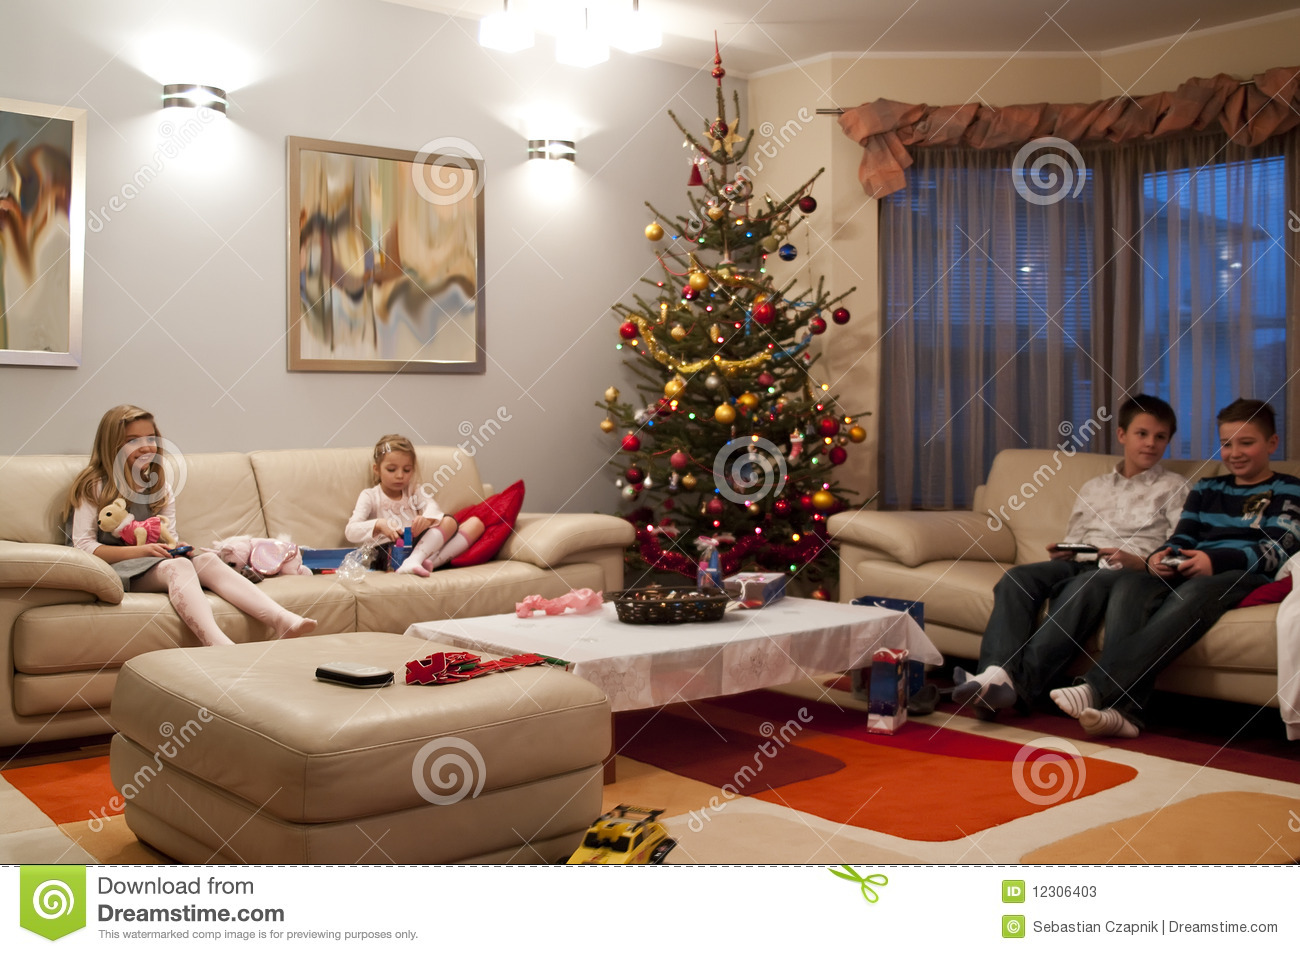 Children in living room stock image image of colorful 12306403 - Living room picture ...